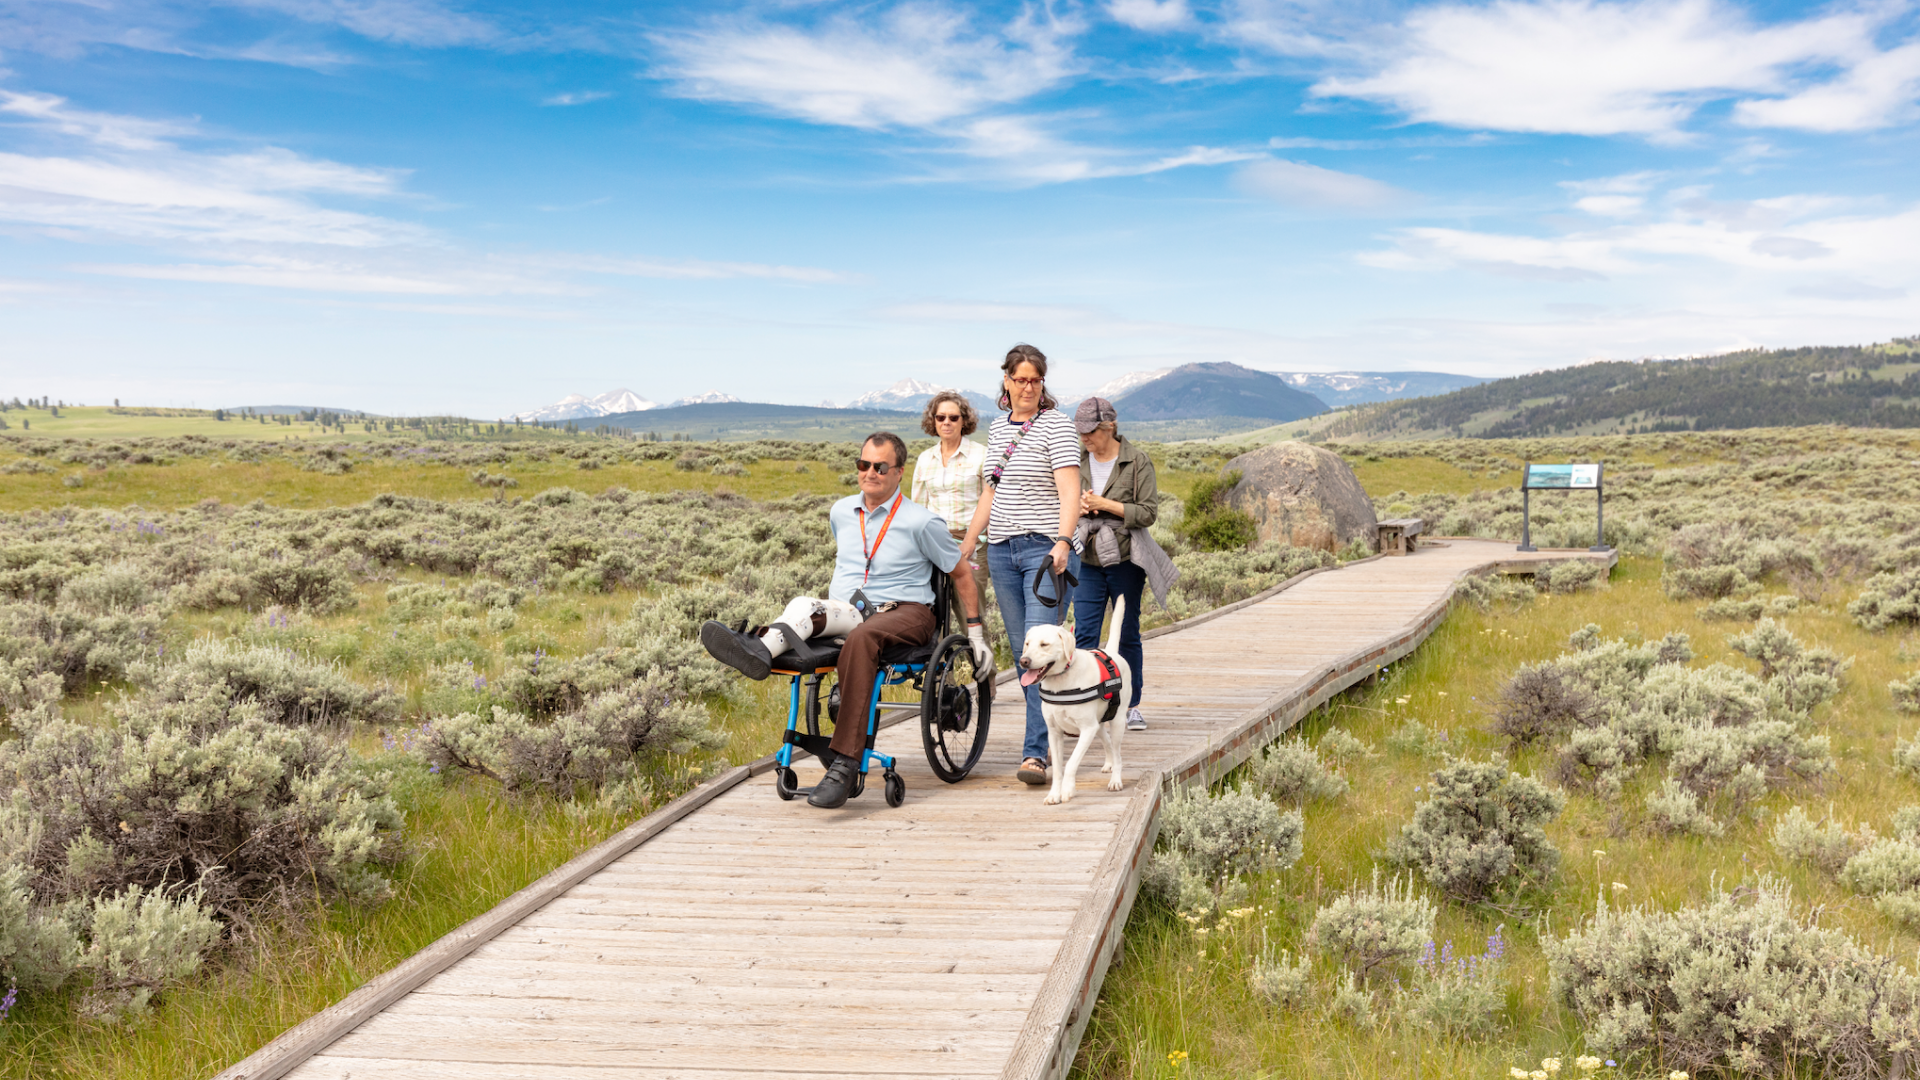 5 Most ADA Friendly National Parks